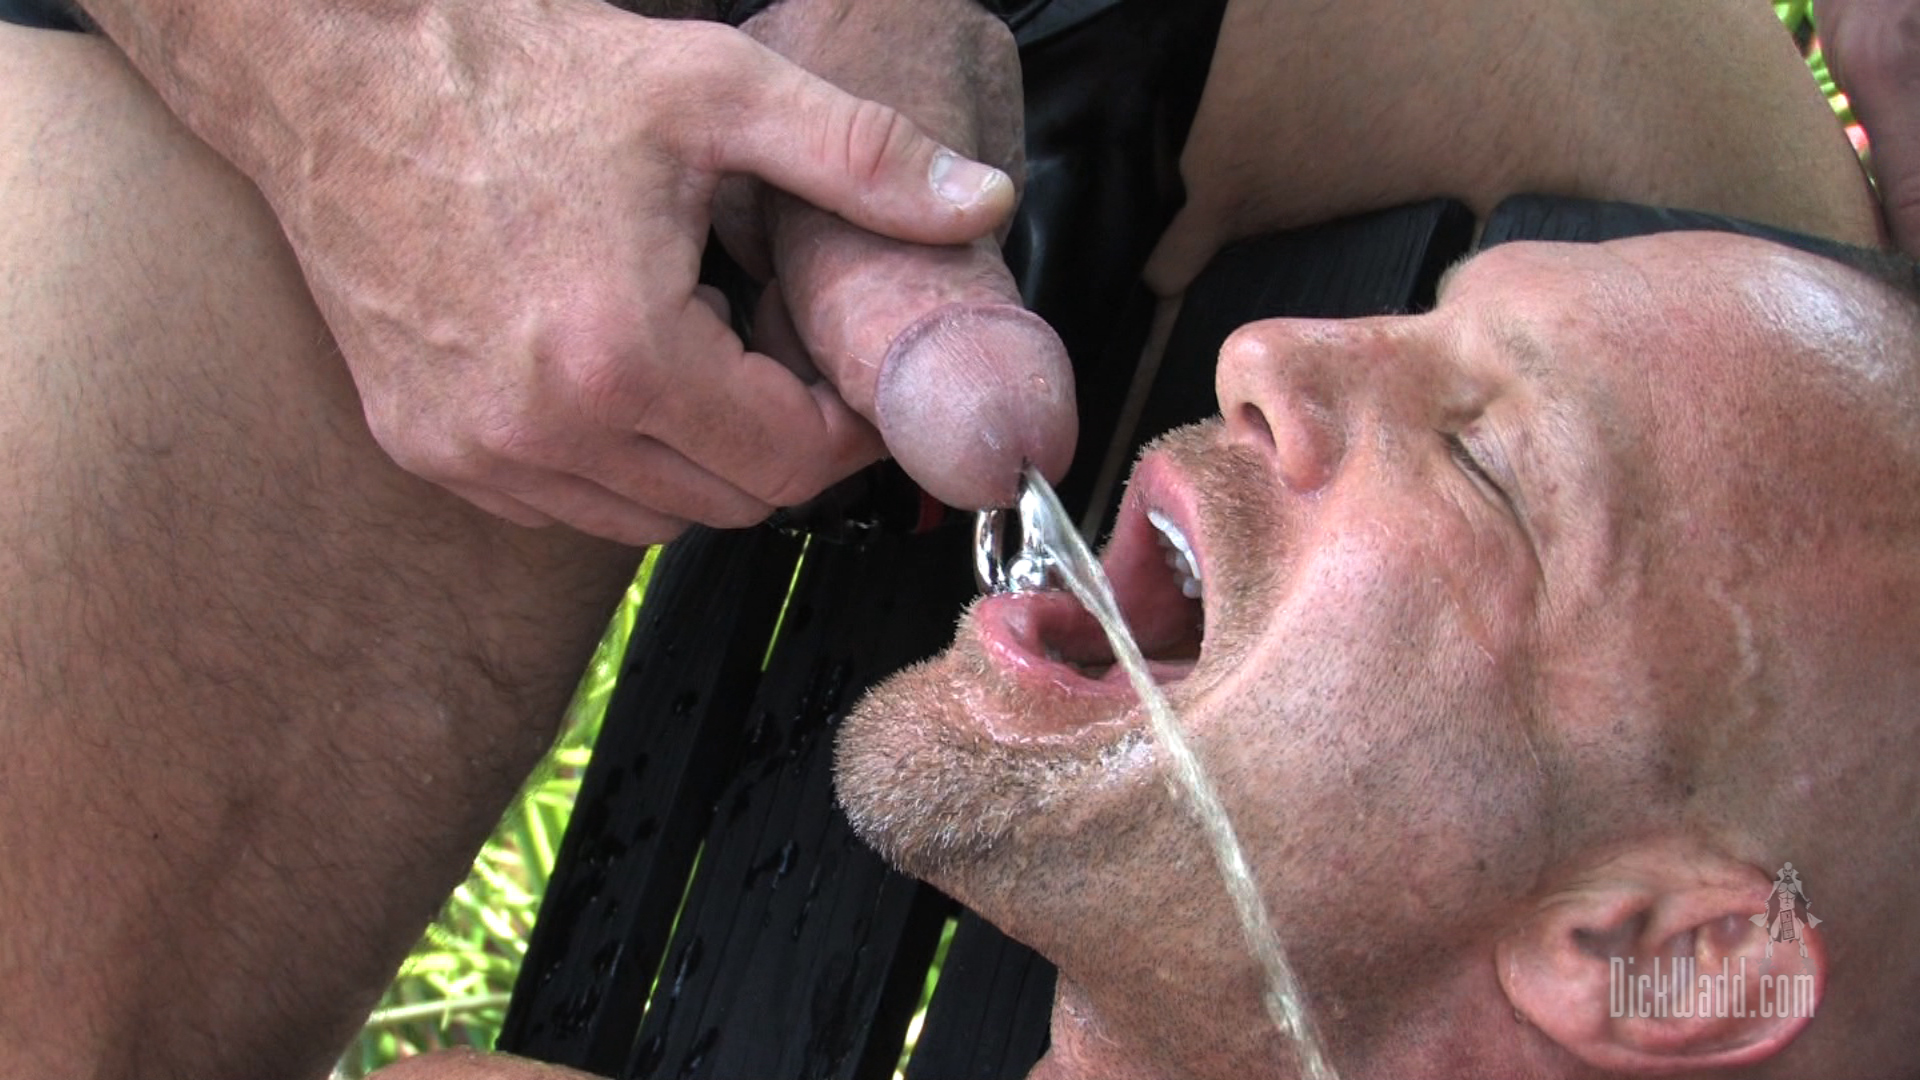 Free gay pissing porn and old hairy gay men pissing the youthful man